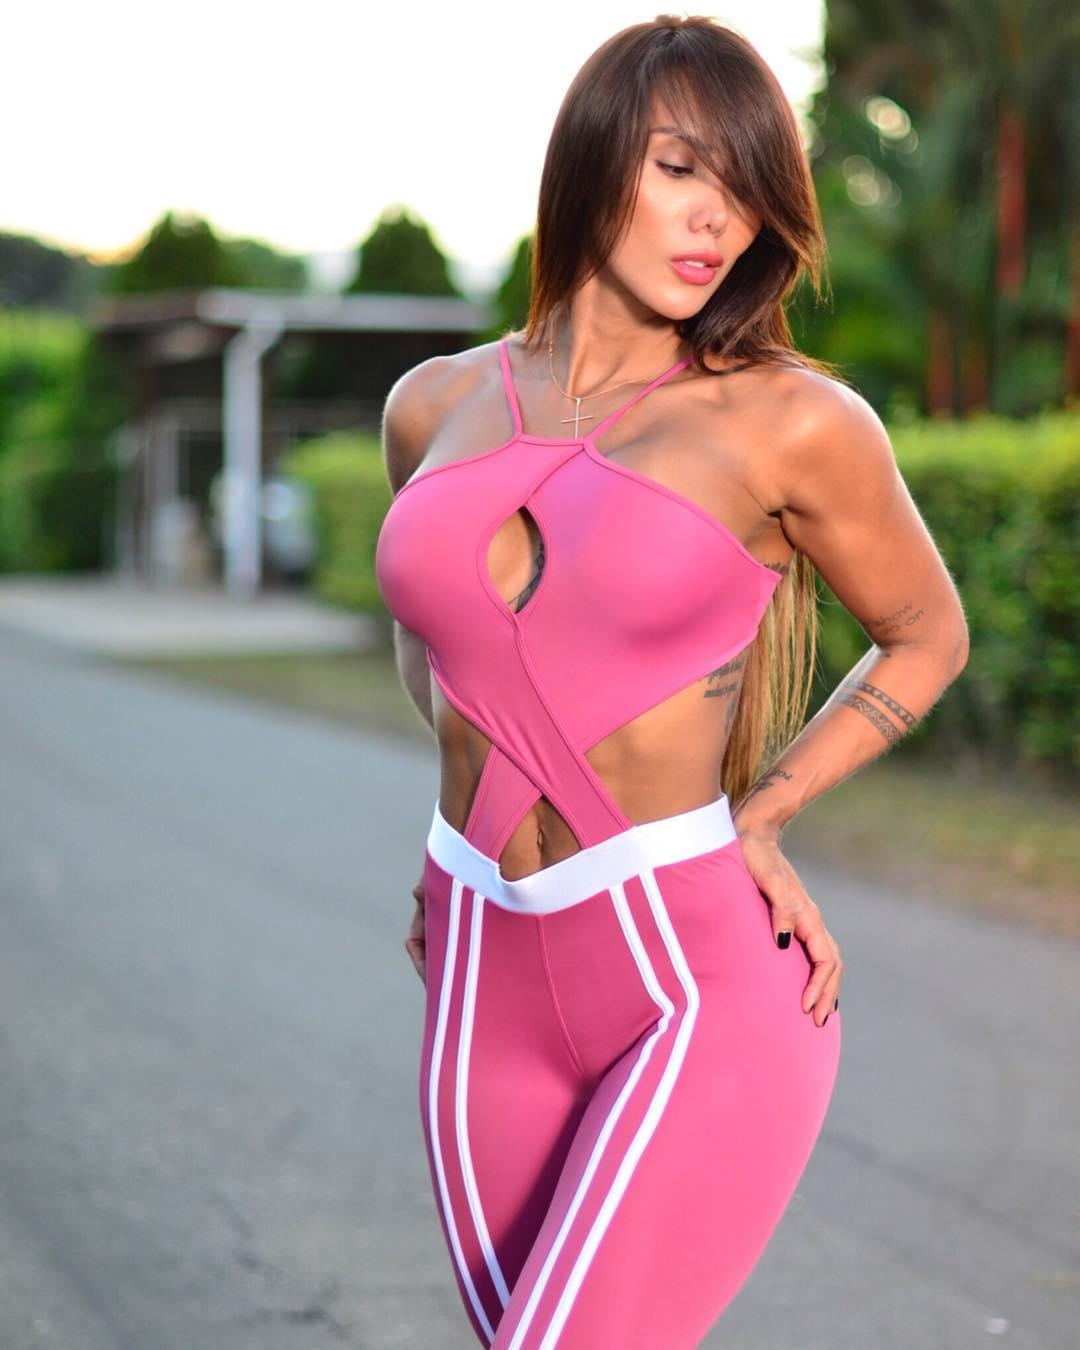 Sonia Isaza Hot Pink Sports Wear - Sonia Isaza Hot Pink Sports Wear